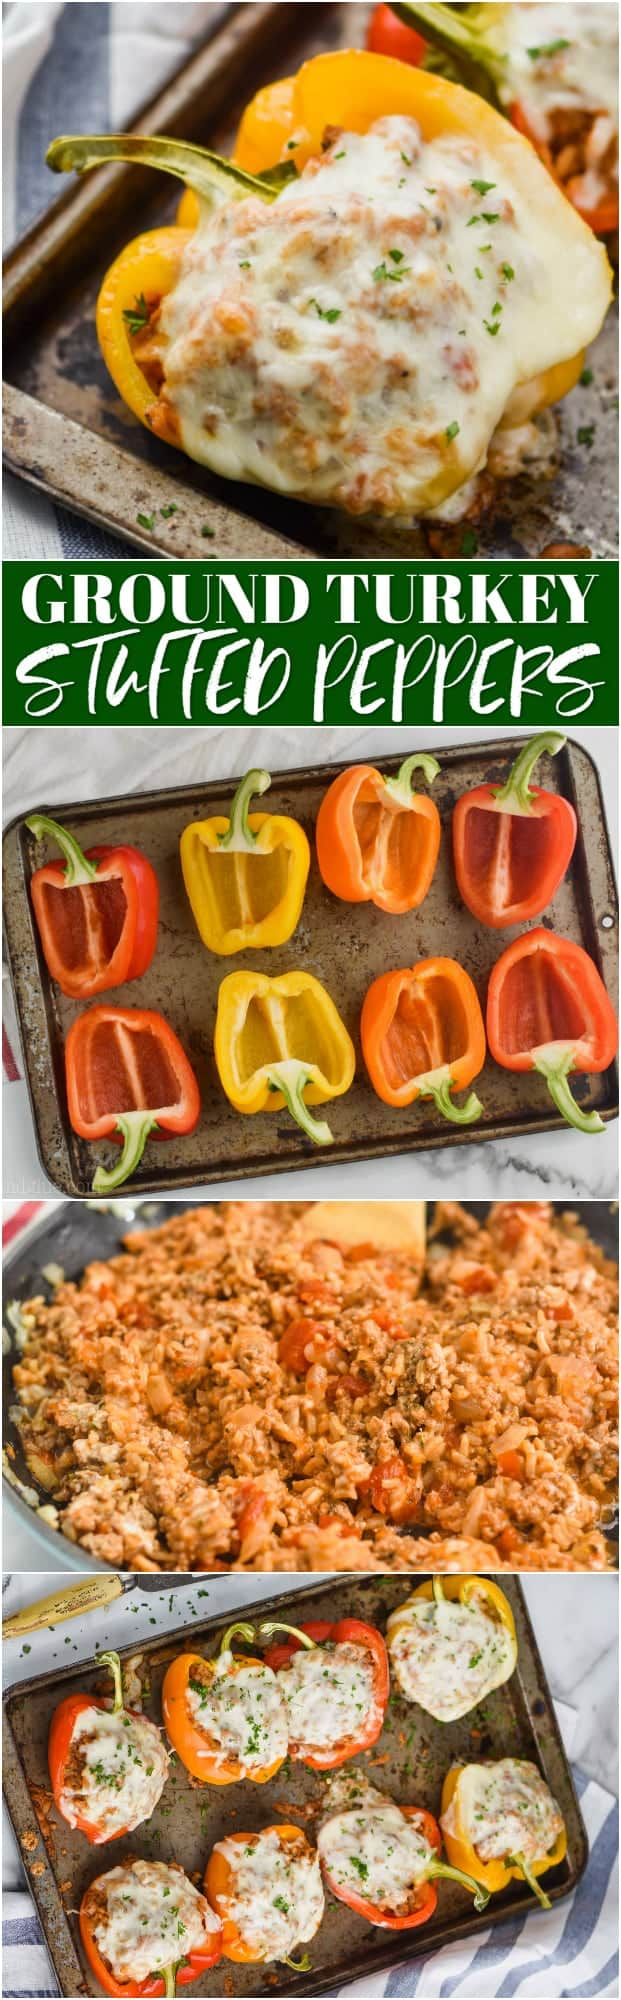 collage of how to make ground turkey stuffed peppers